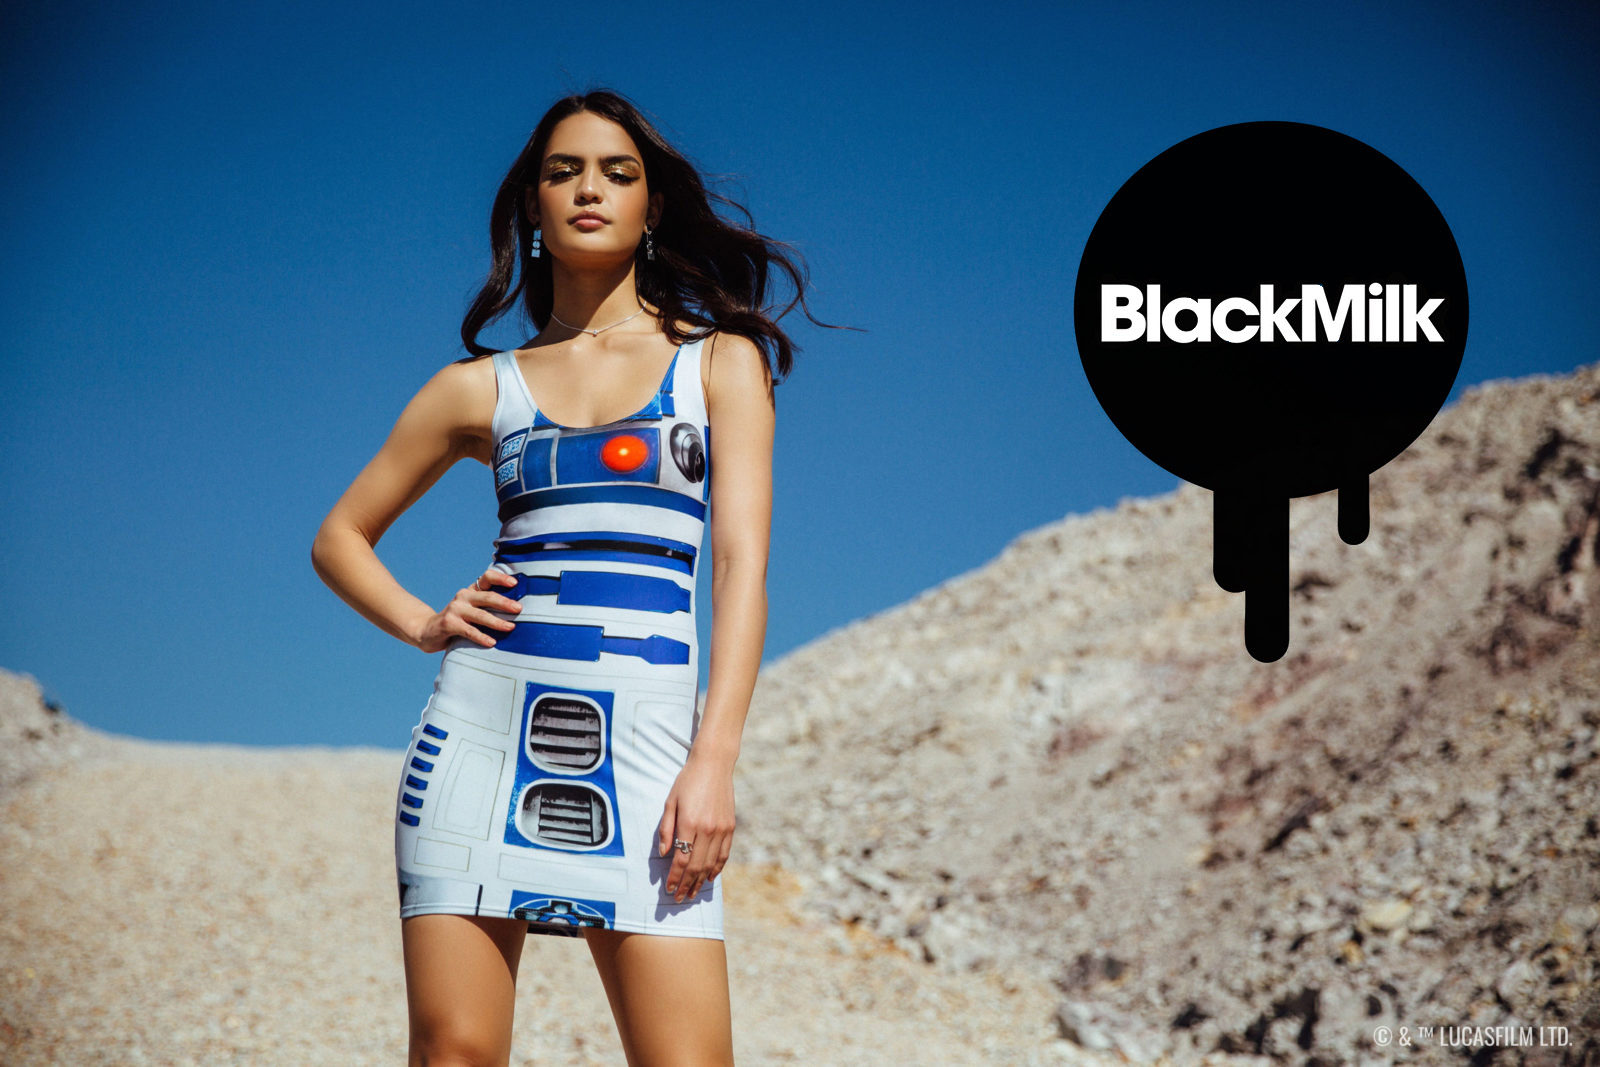 Interview with BlackMilk Clothing